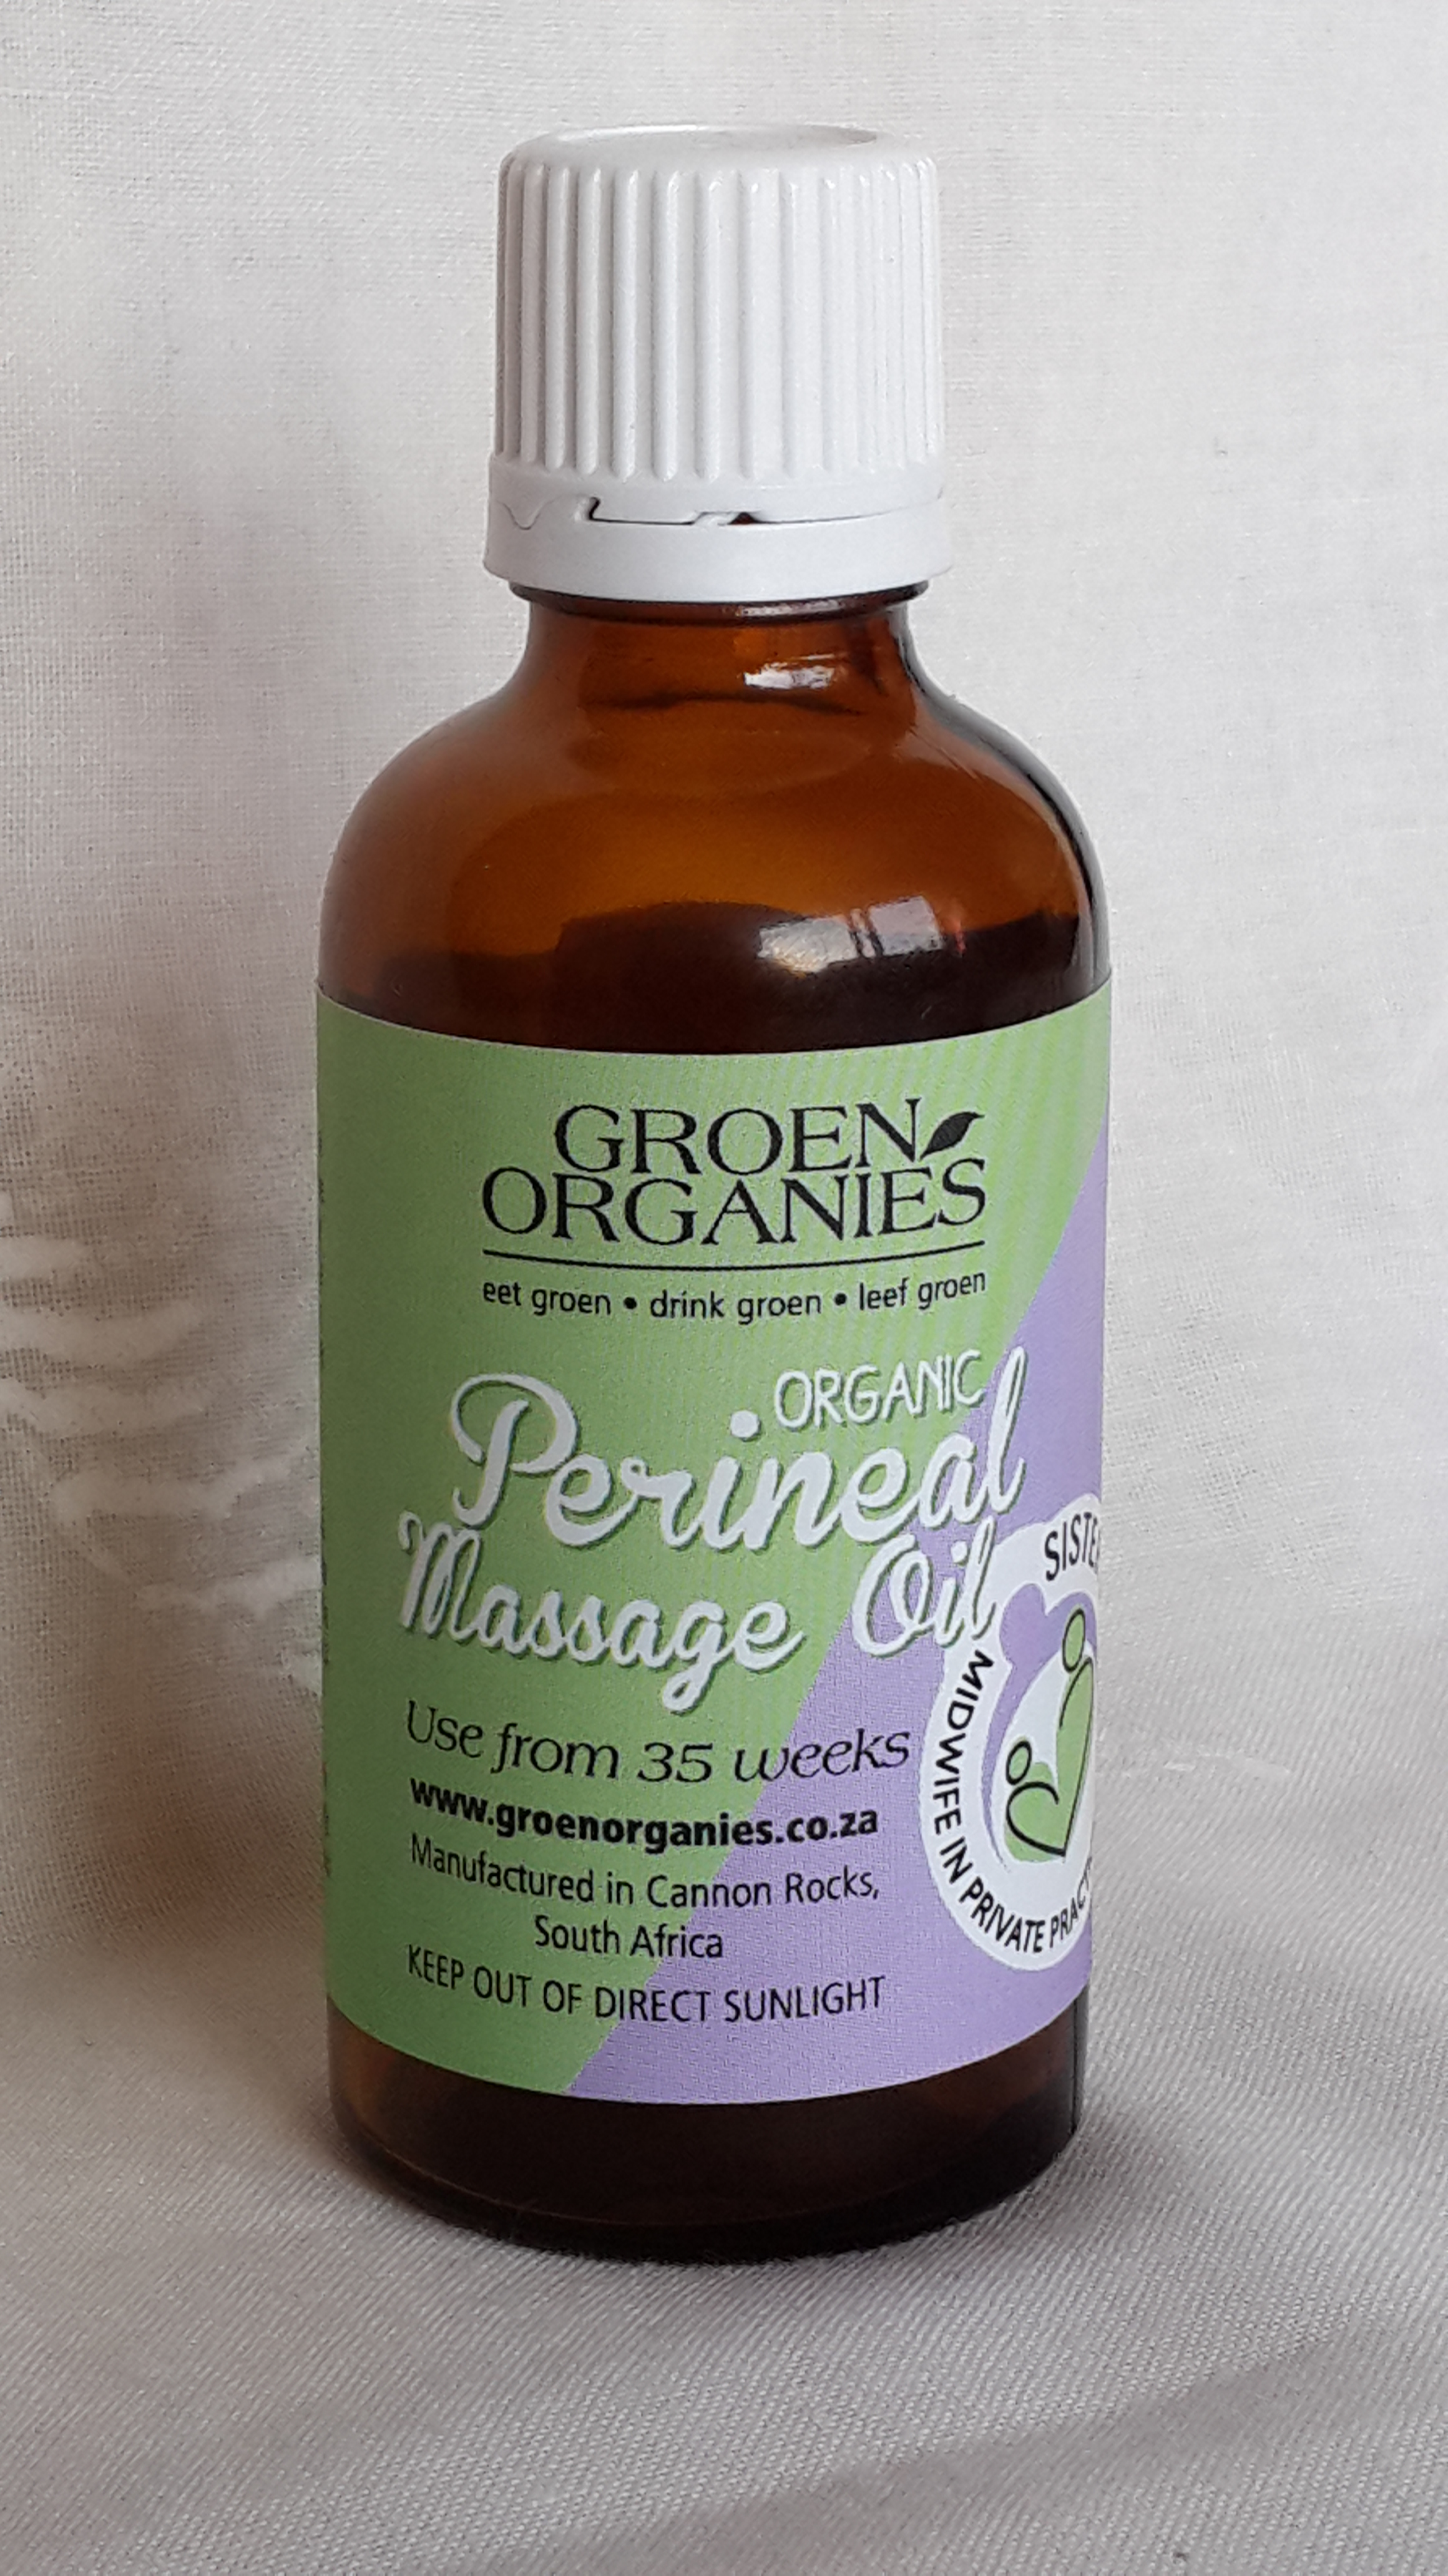 Organic Perineal massage oil | Sister Ingrid - Care with a ...